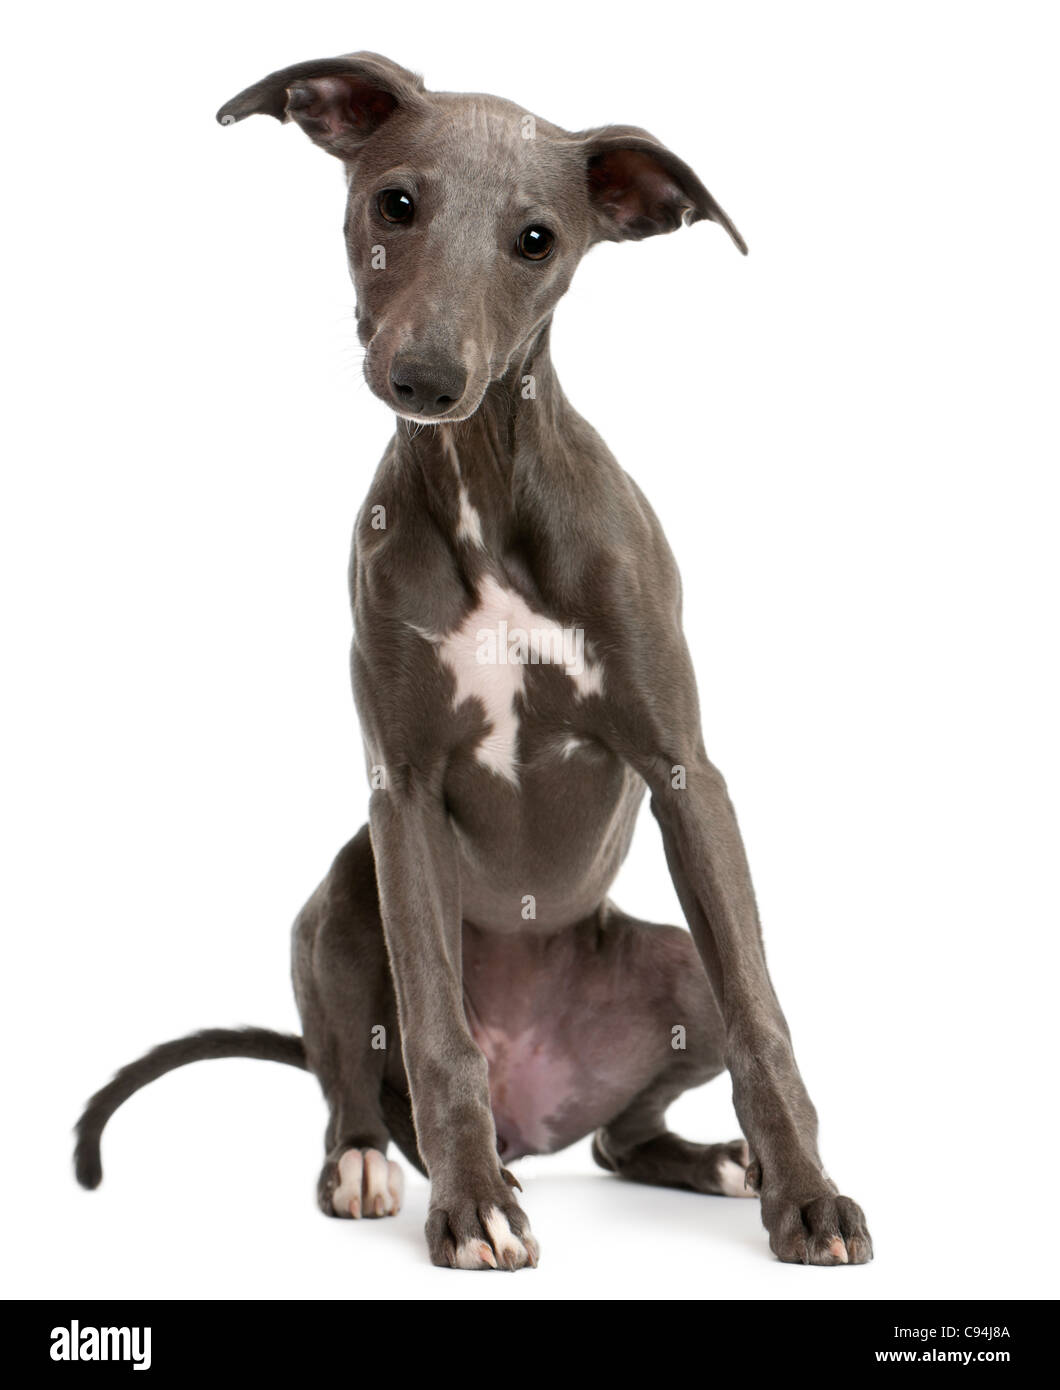 Whippet puppy, 6 months old, sitting in front of white background - Stock Image